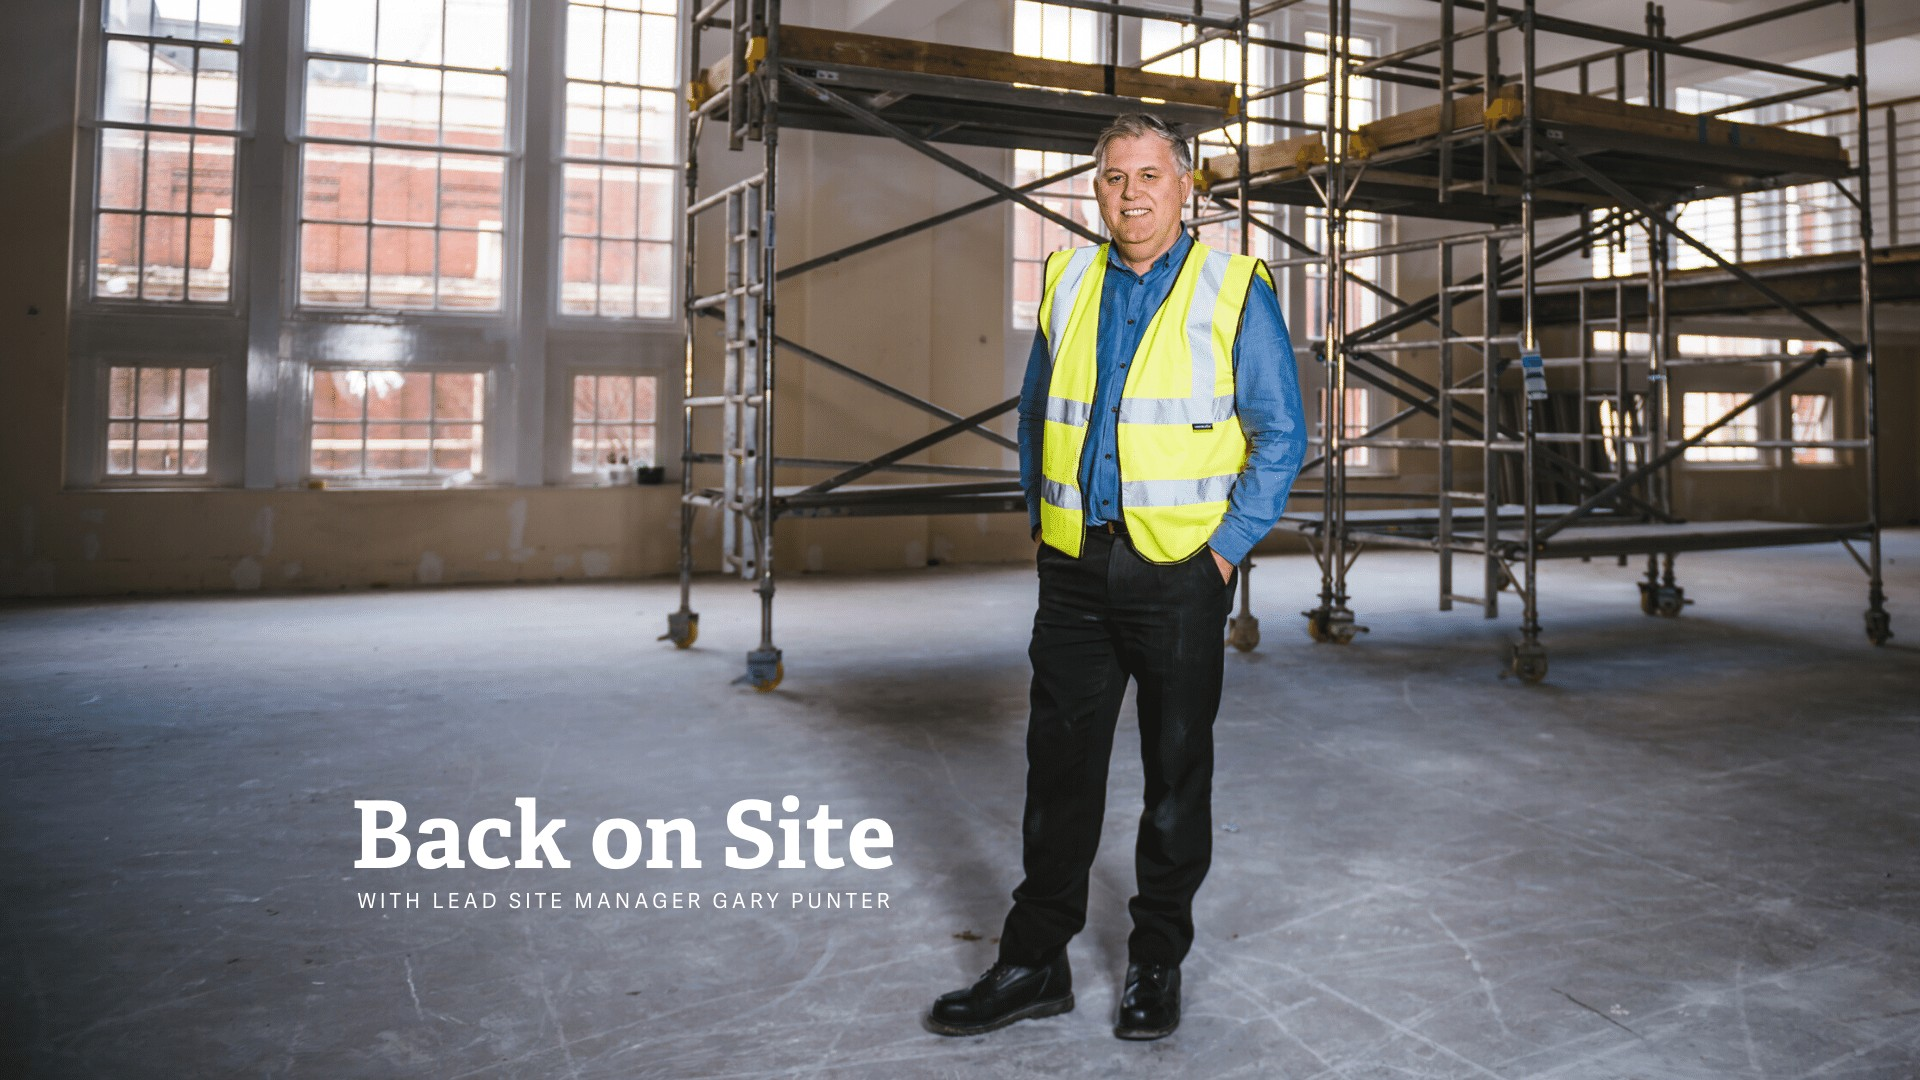 Back on site with Gary Punter